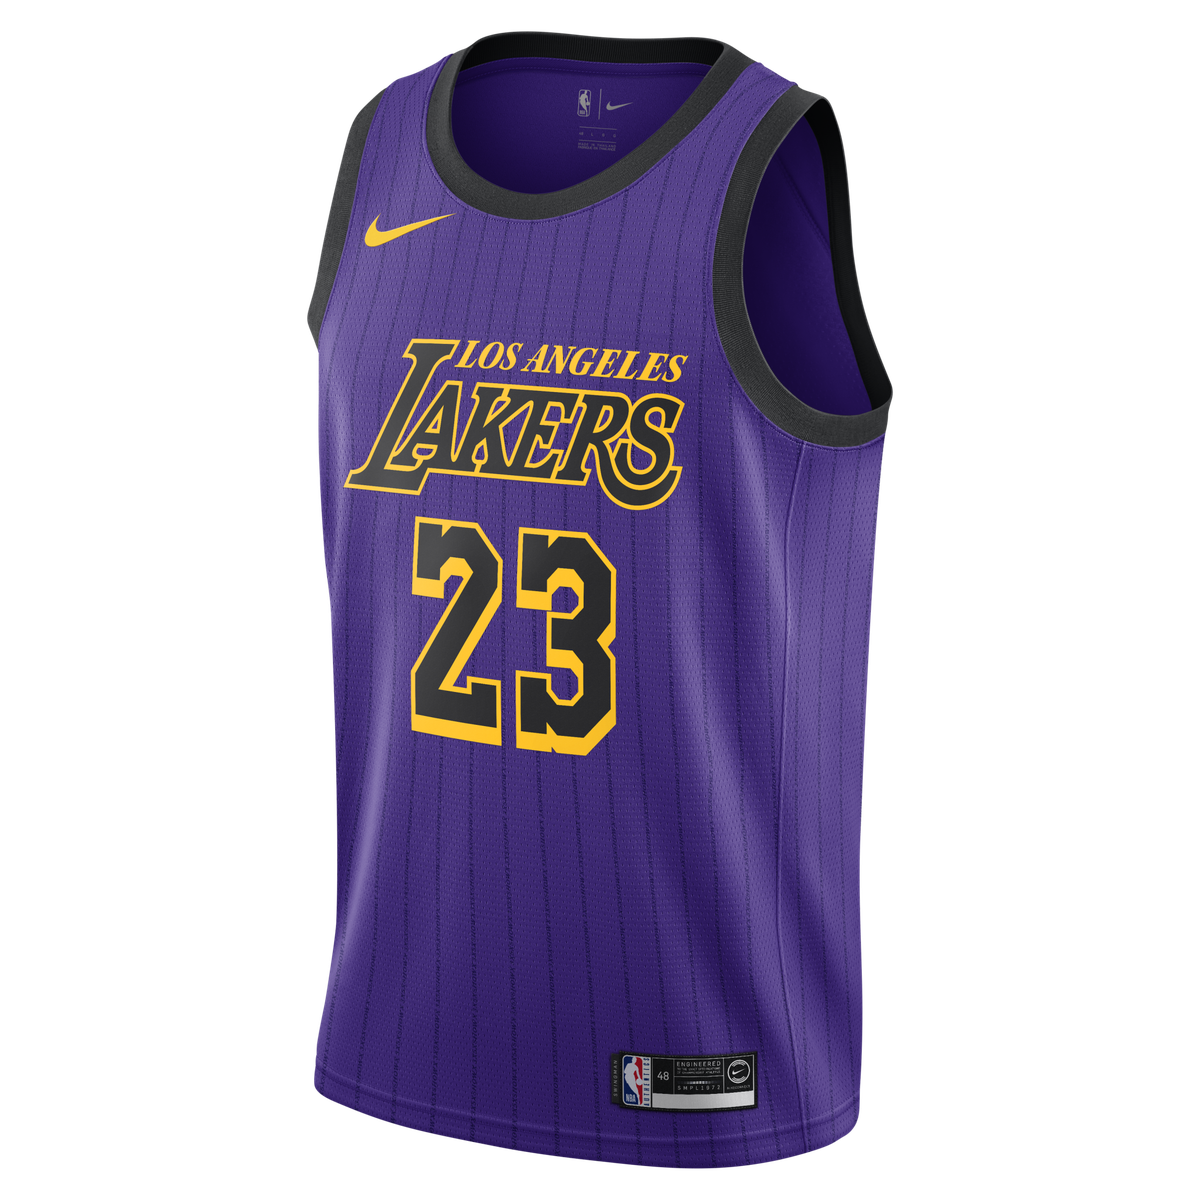 b1b3bb408fc LeBron James Nike Swingman Jersey - City Edition for  109.99 Fanatics